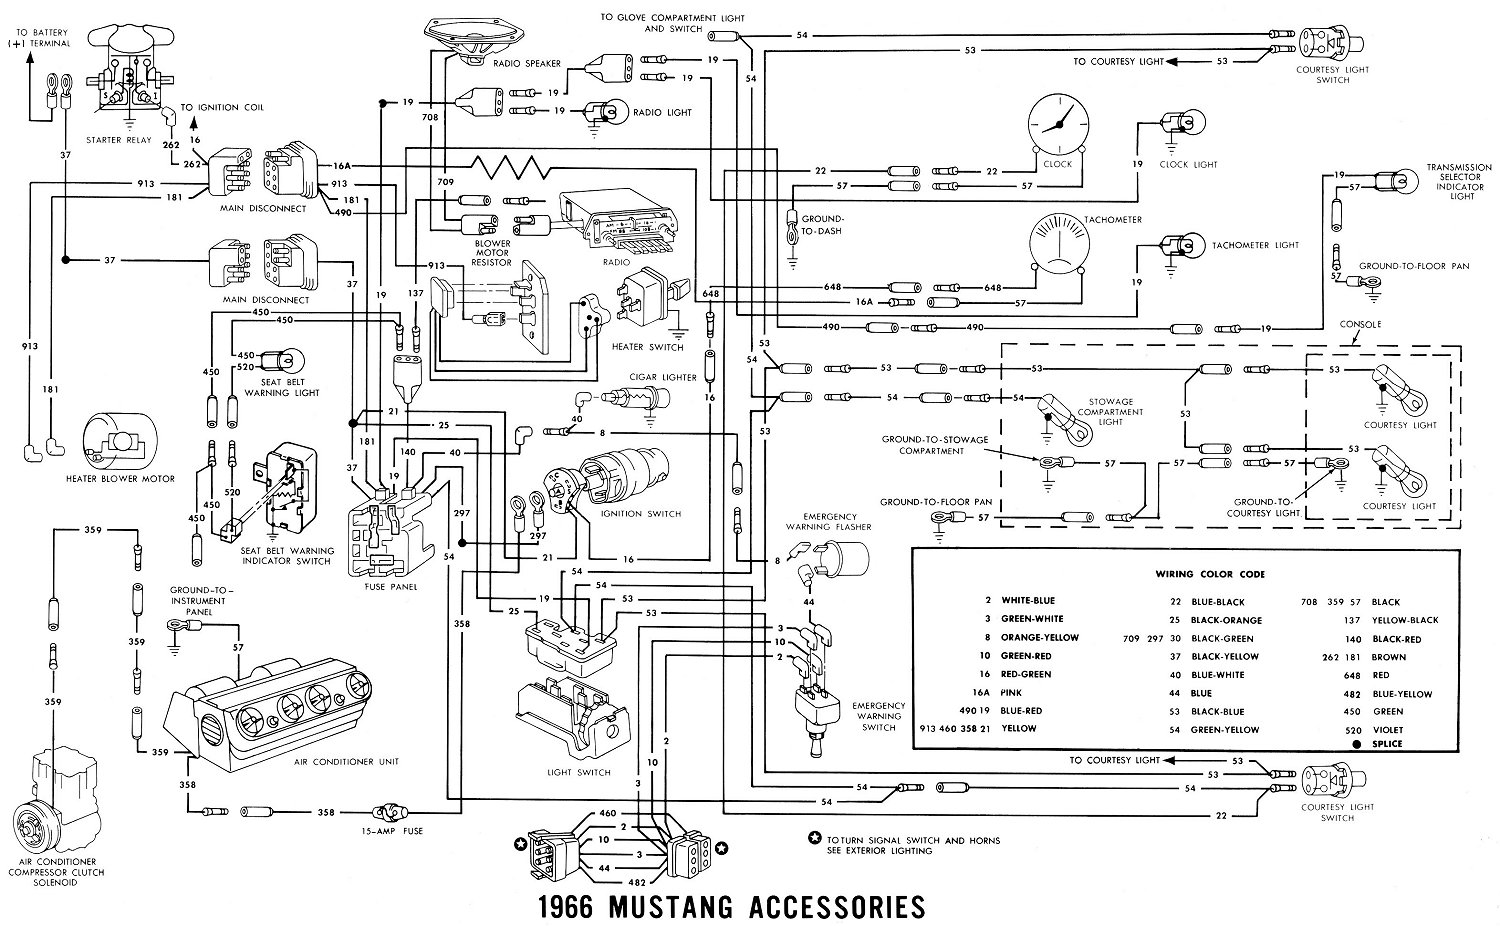 1966 mustang wiring harness diagram detailed schematics diagram rh  lelandlutheran com 91 Mustang Dash Wiring Schematic Diagram Mustang  Alternator Wiring ...